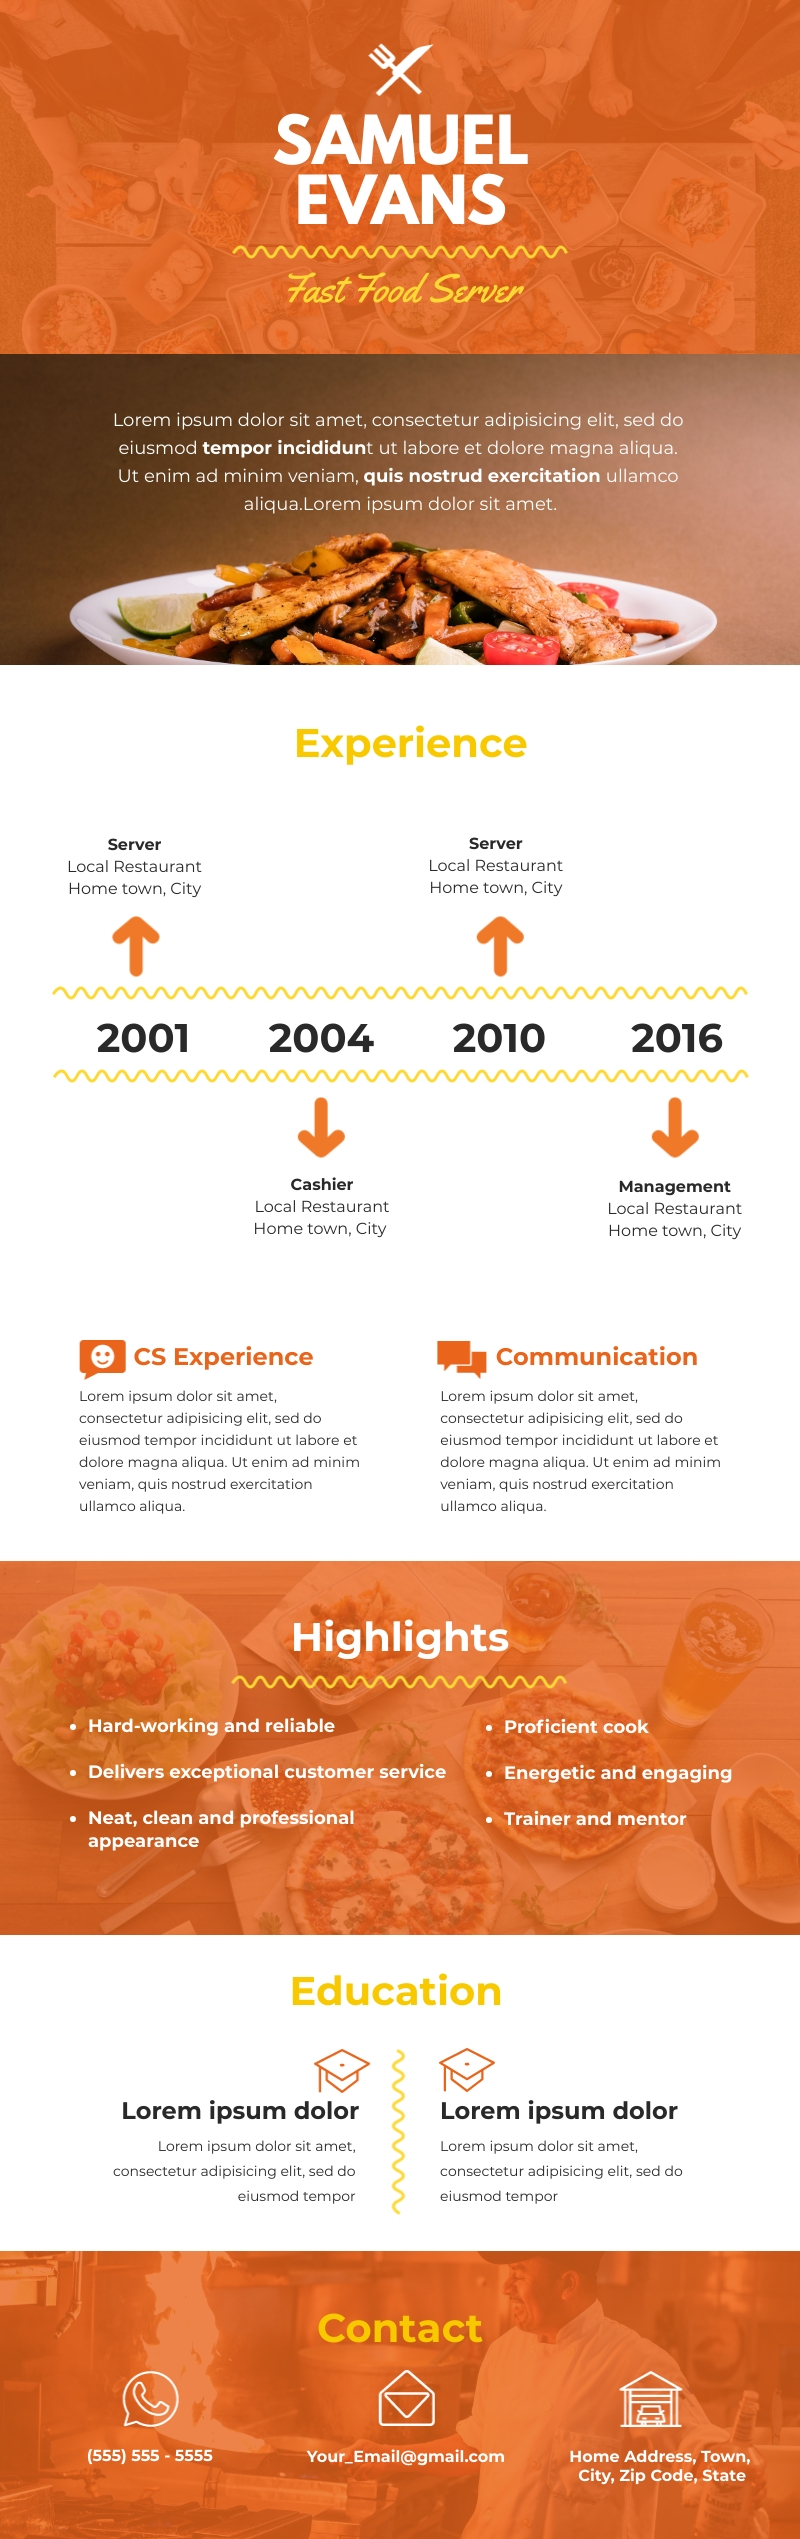 Light Fast Food Server Resume - Infographic Template